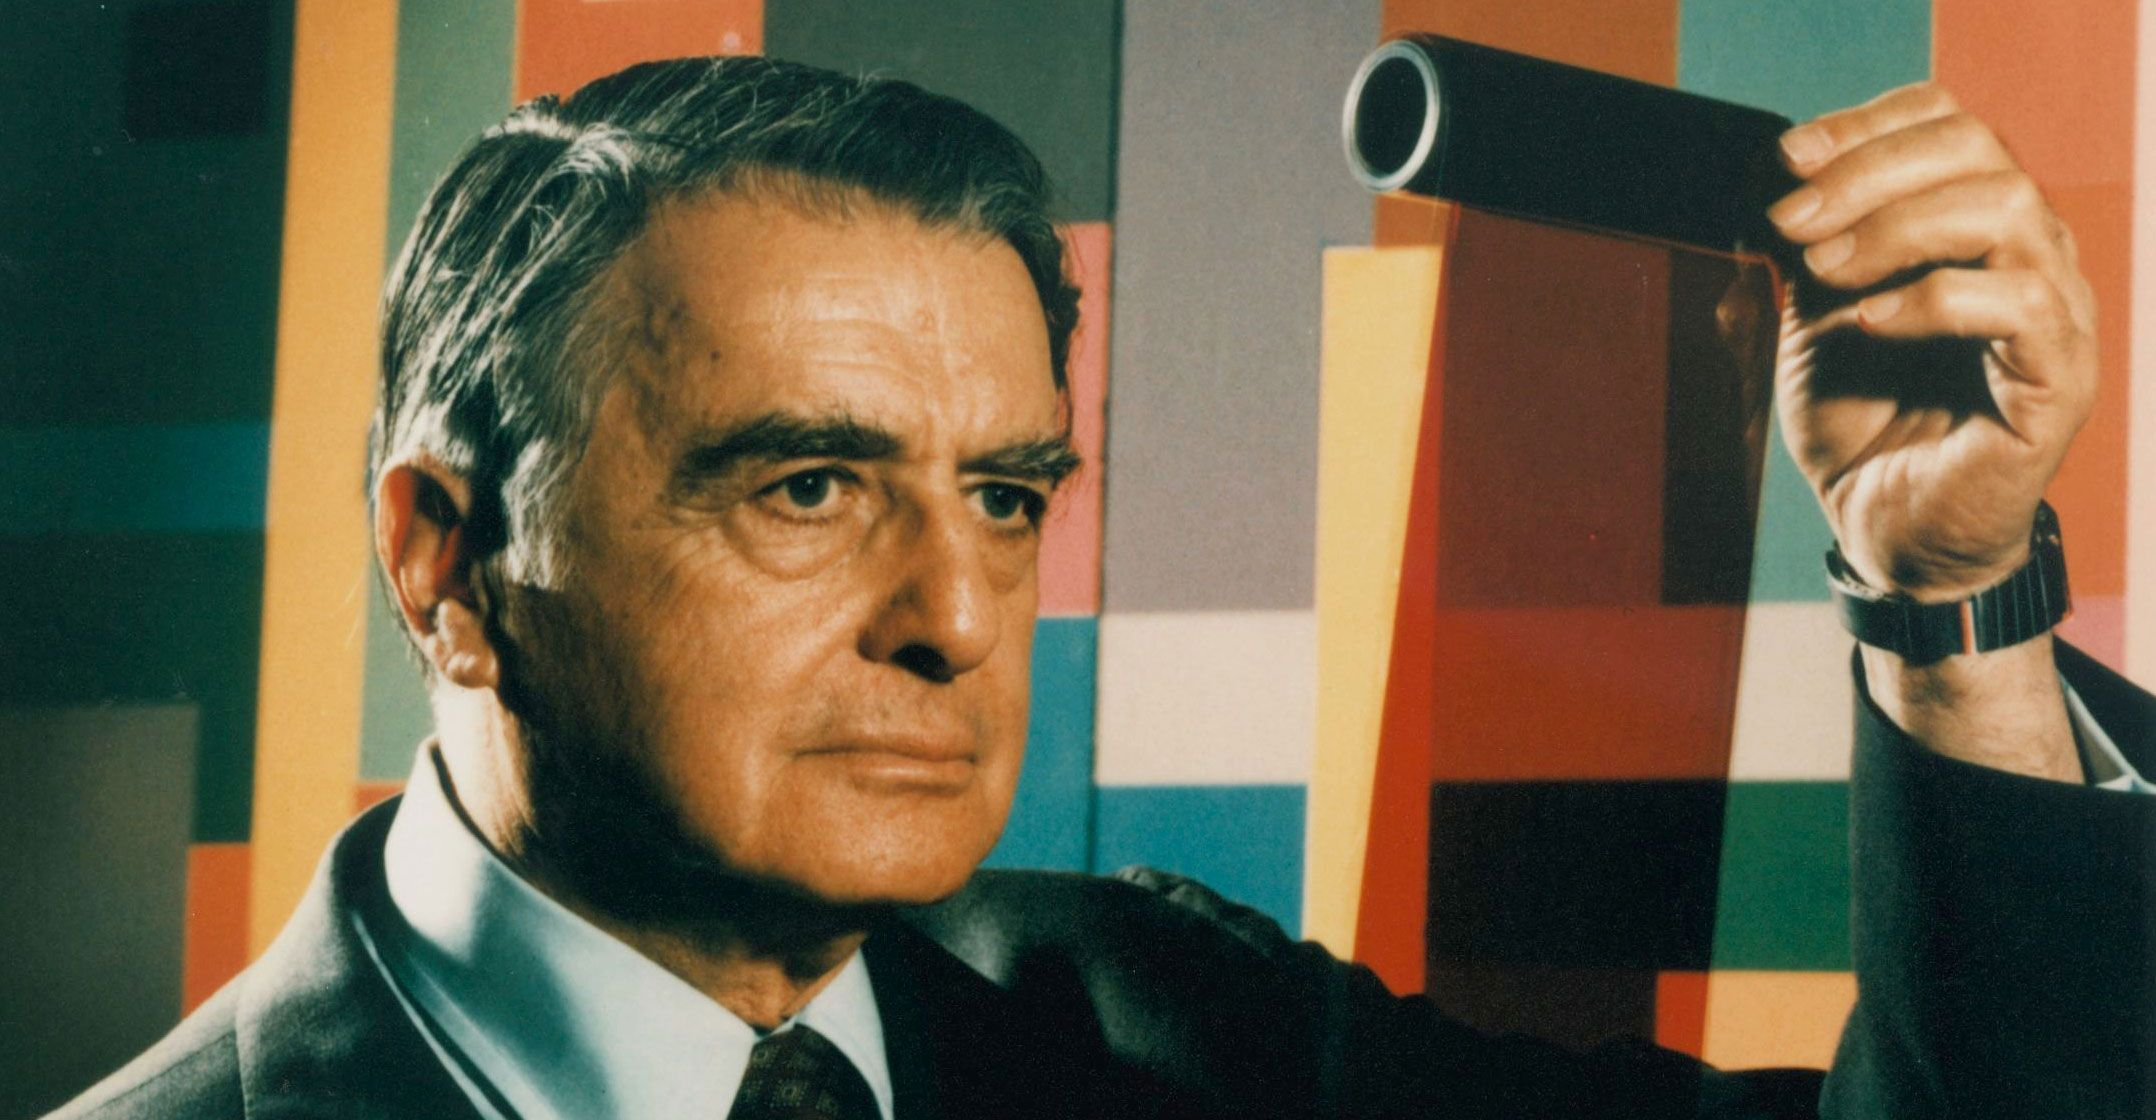 Edwin Land. Photo by JJ Scarpetti, courtesy of The Rowland Institute at Harvard